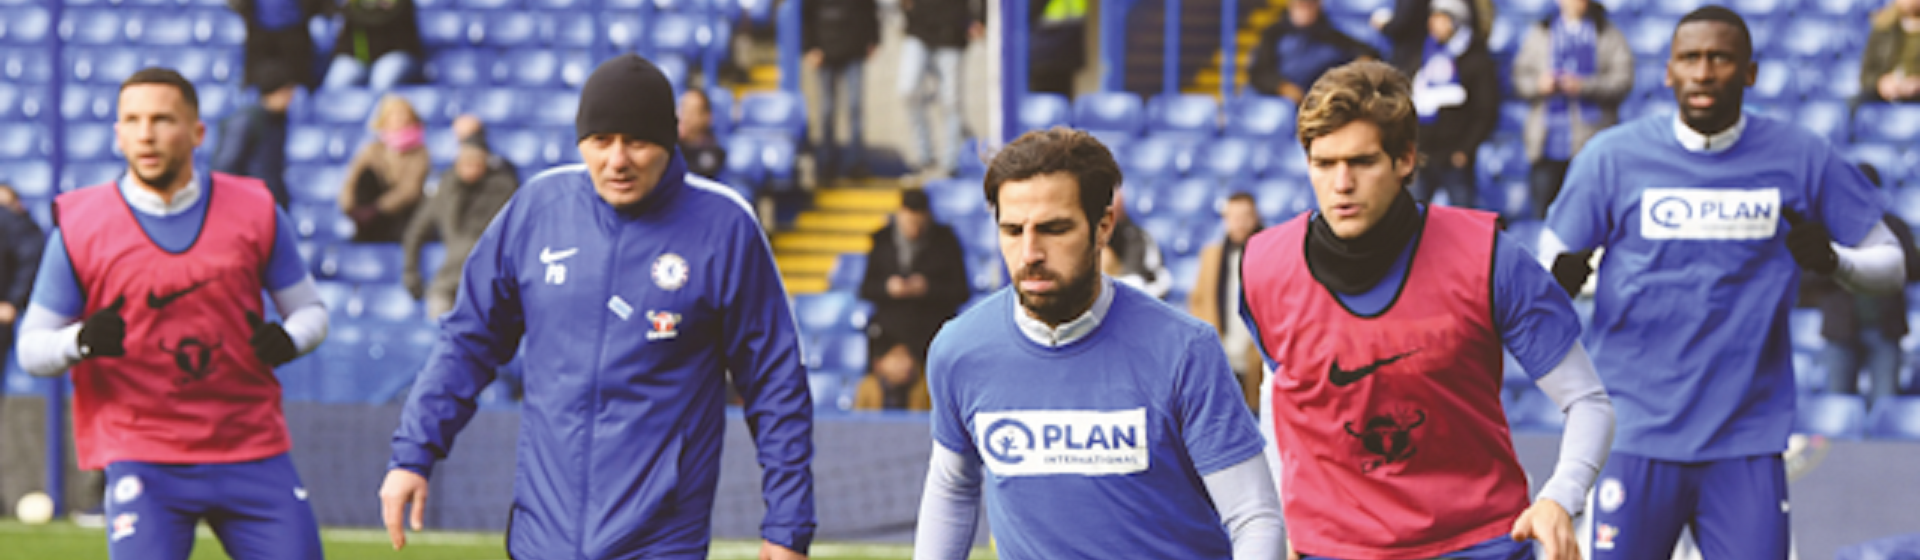 plan-boosted-by-blues-games.img